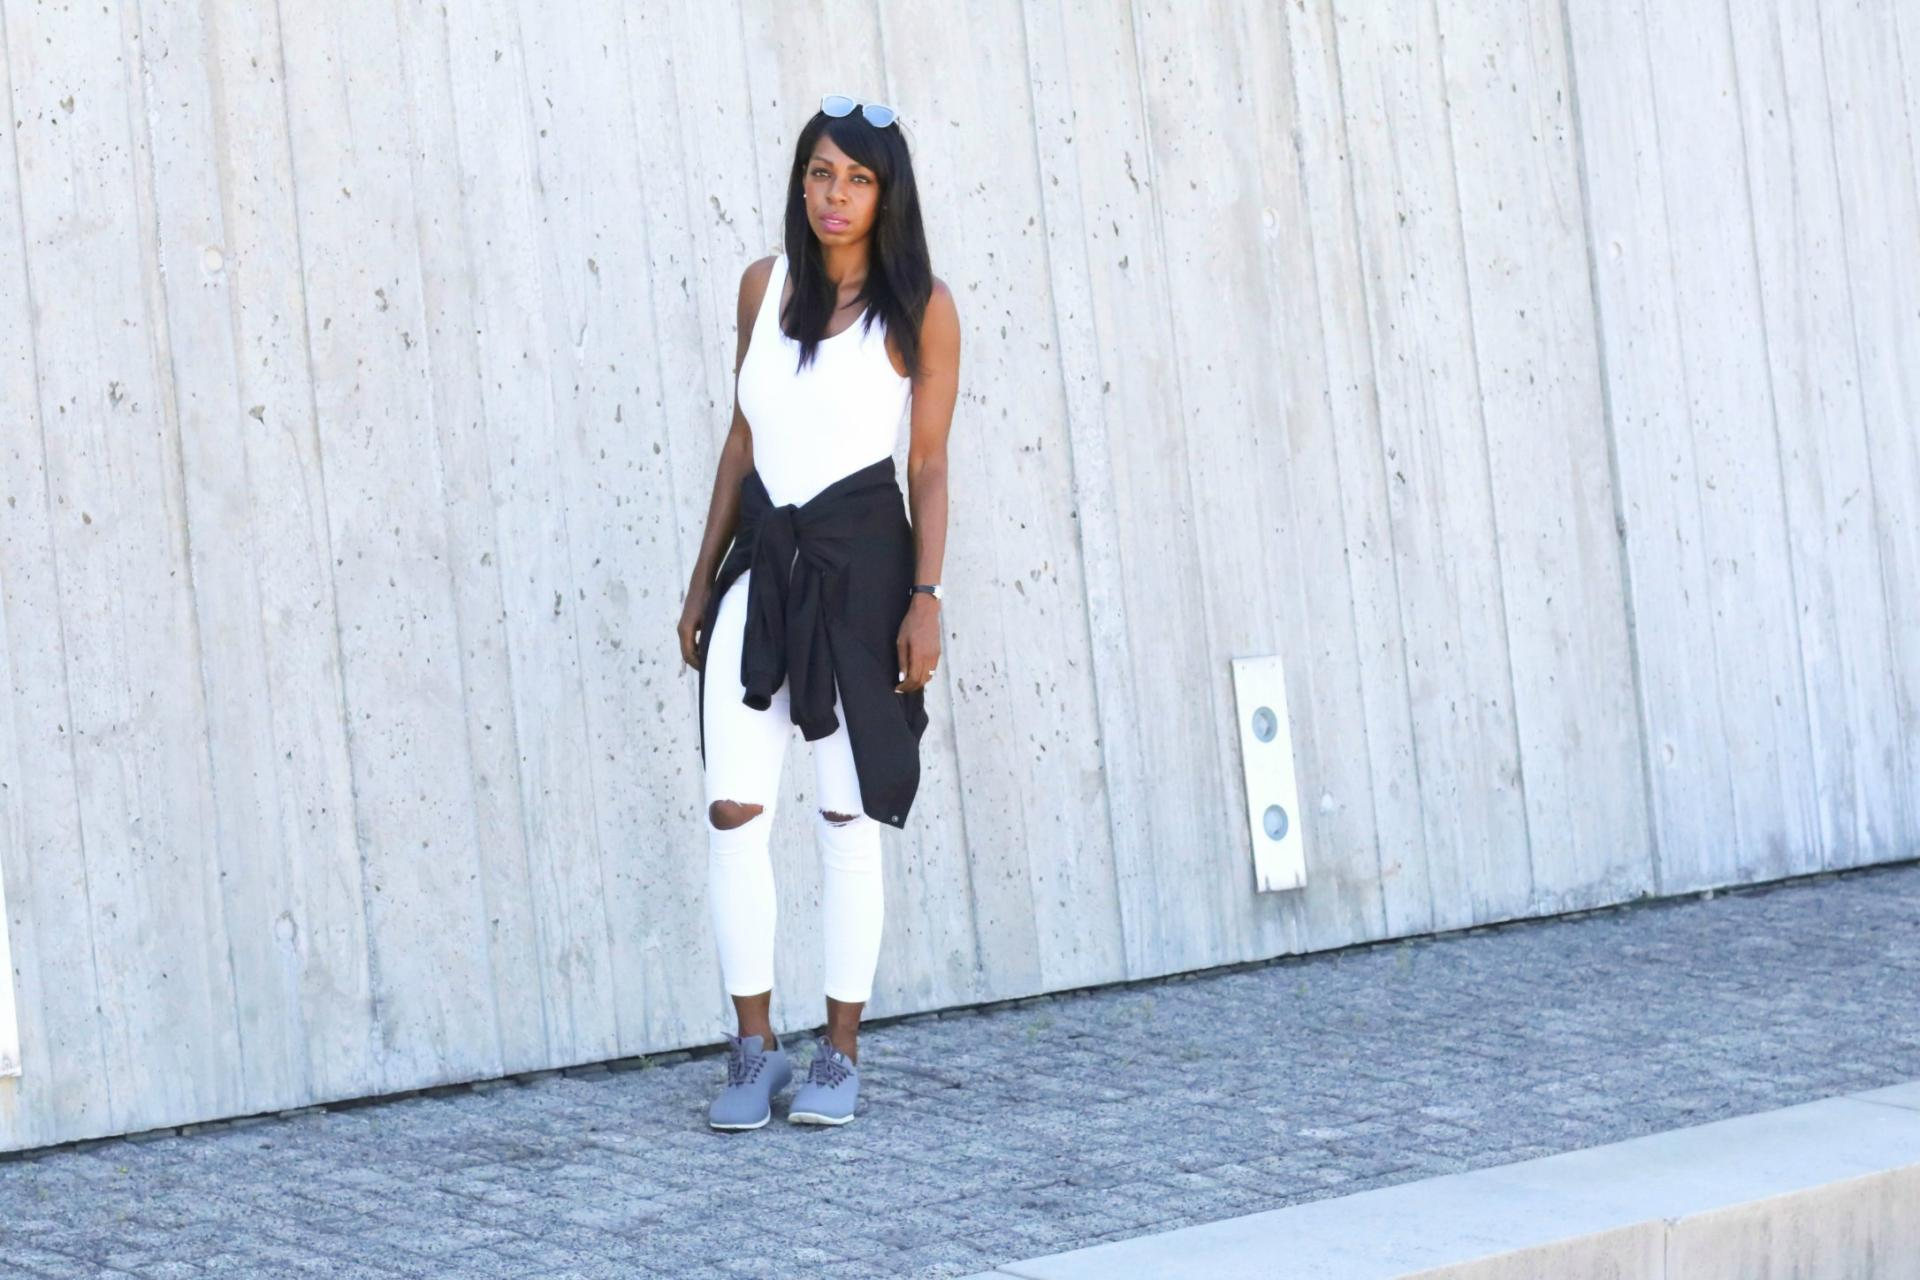 Casual Chic Confidence - Murex | www.styledomination.com